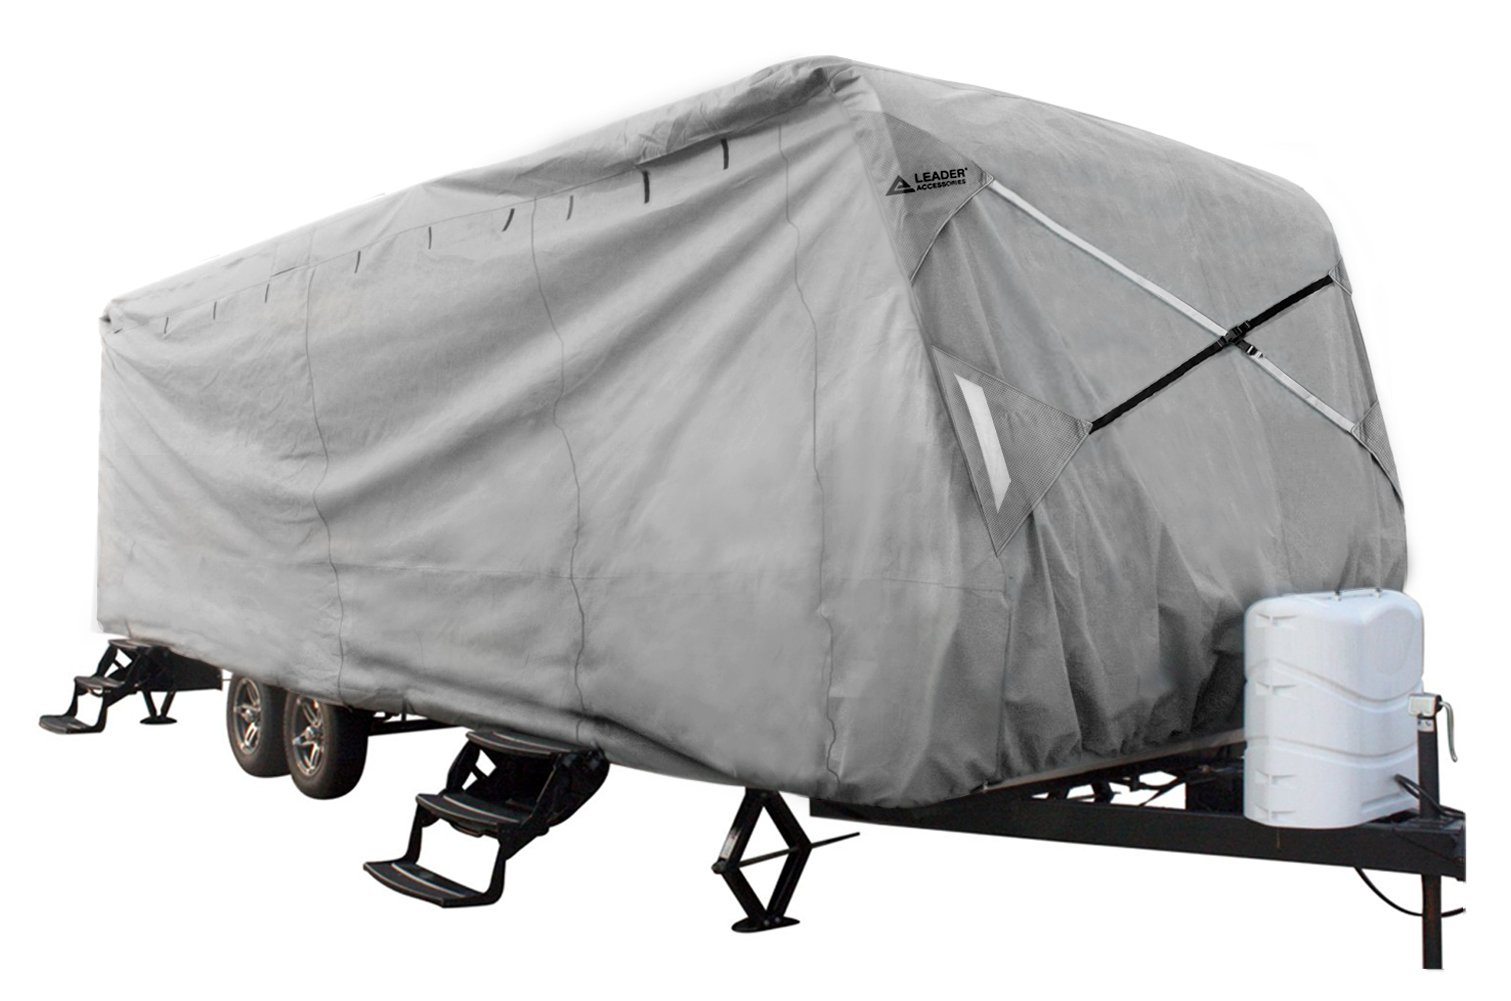 Leader Accessories New Easy Setup Travel Trailer Cover Fits 35'-38' RV Camper with Assist Steel Pole by Leader Accessories